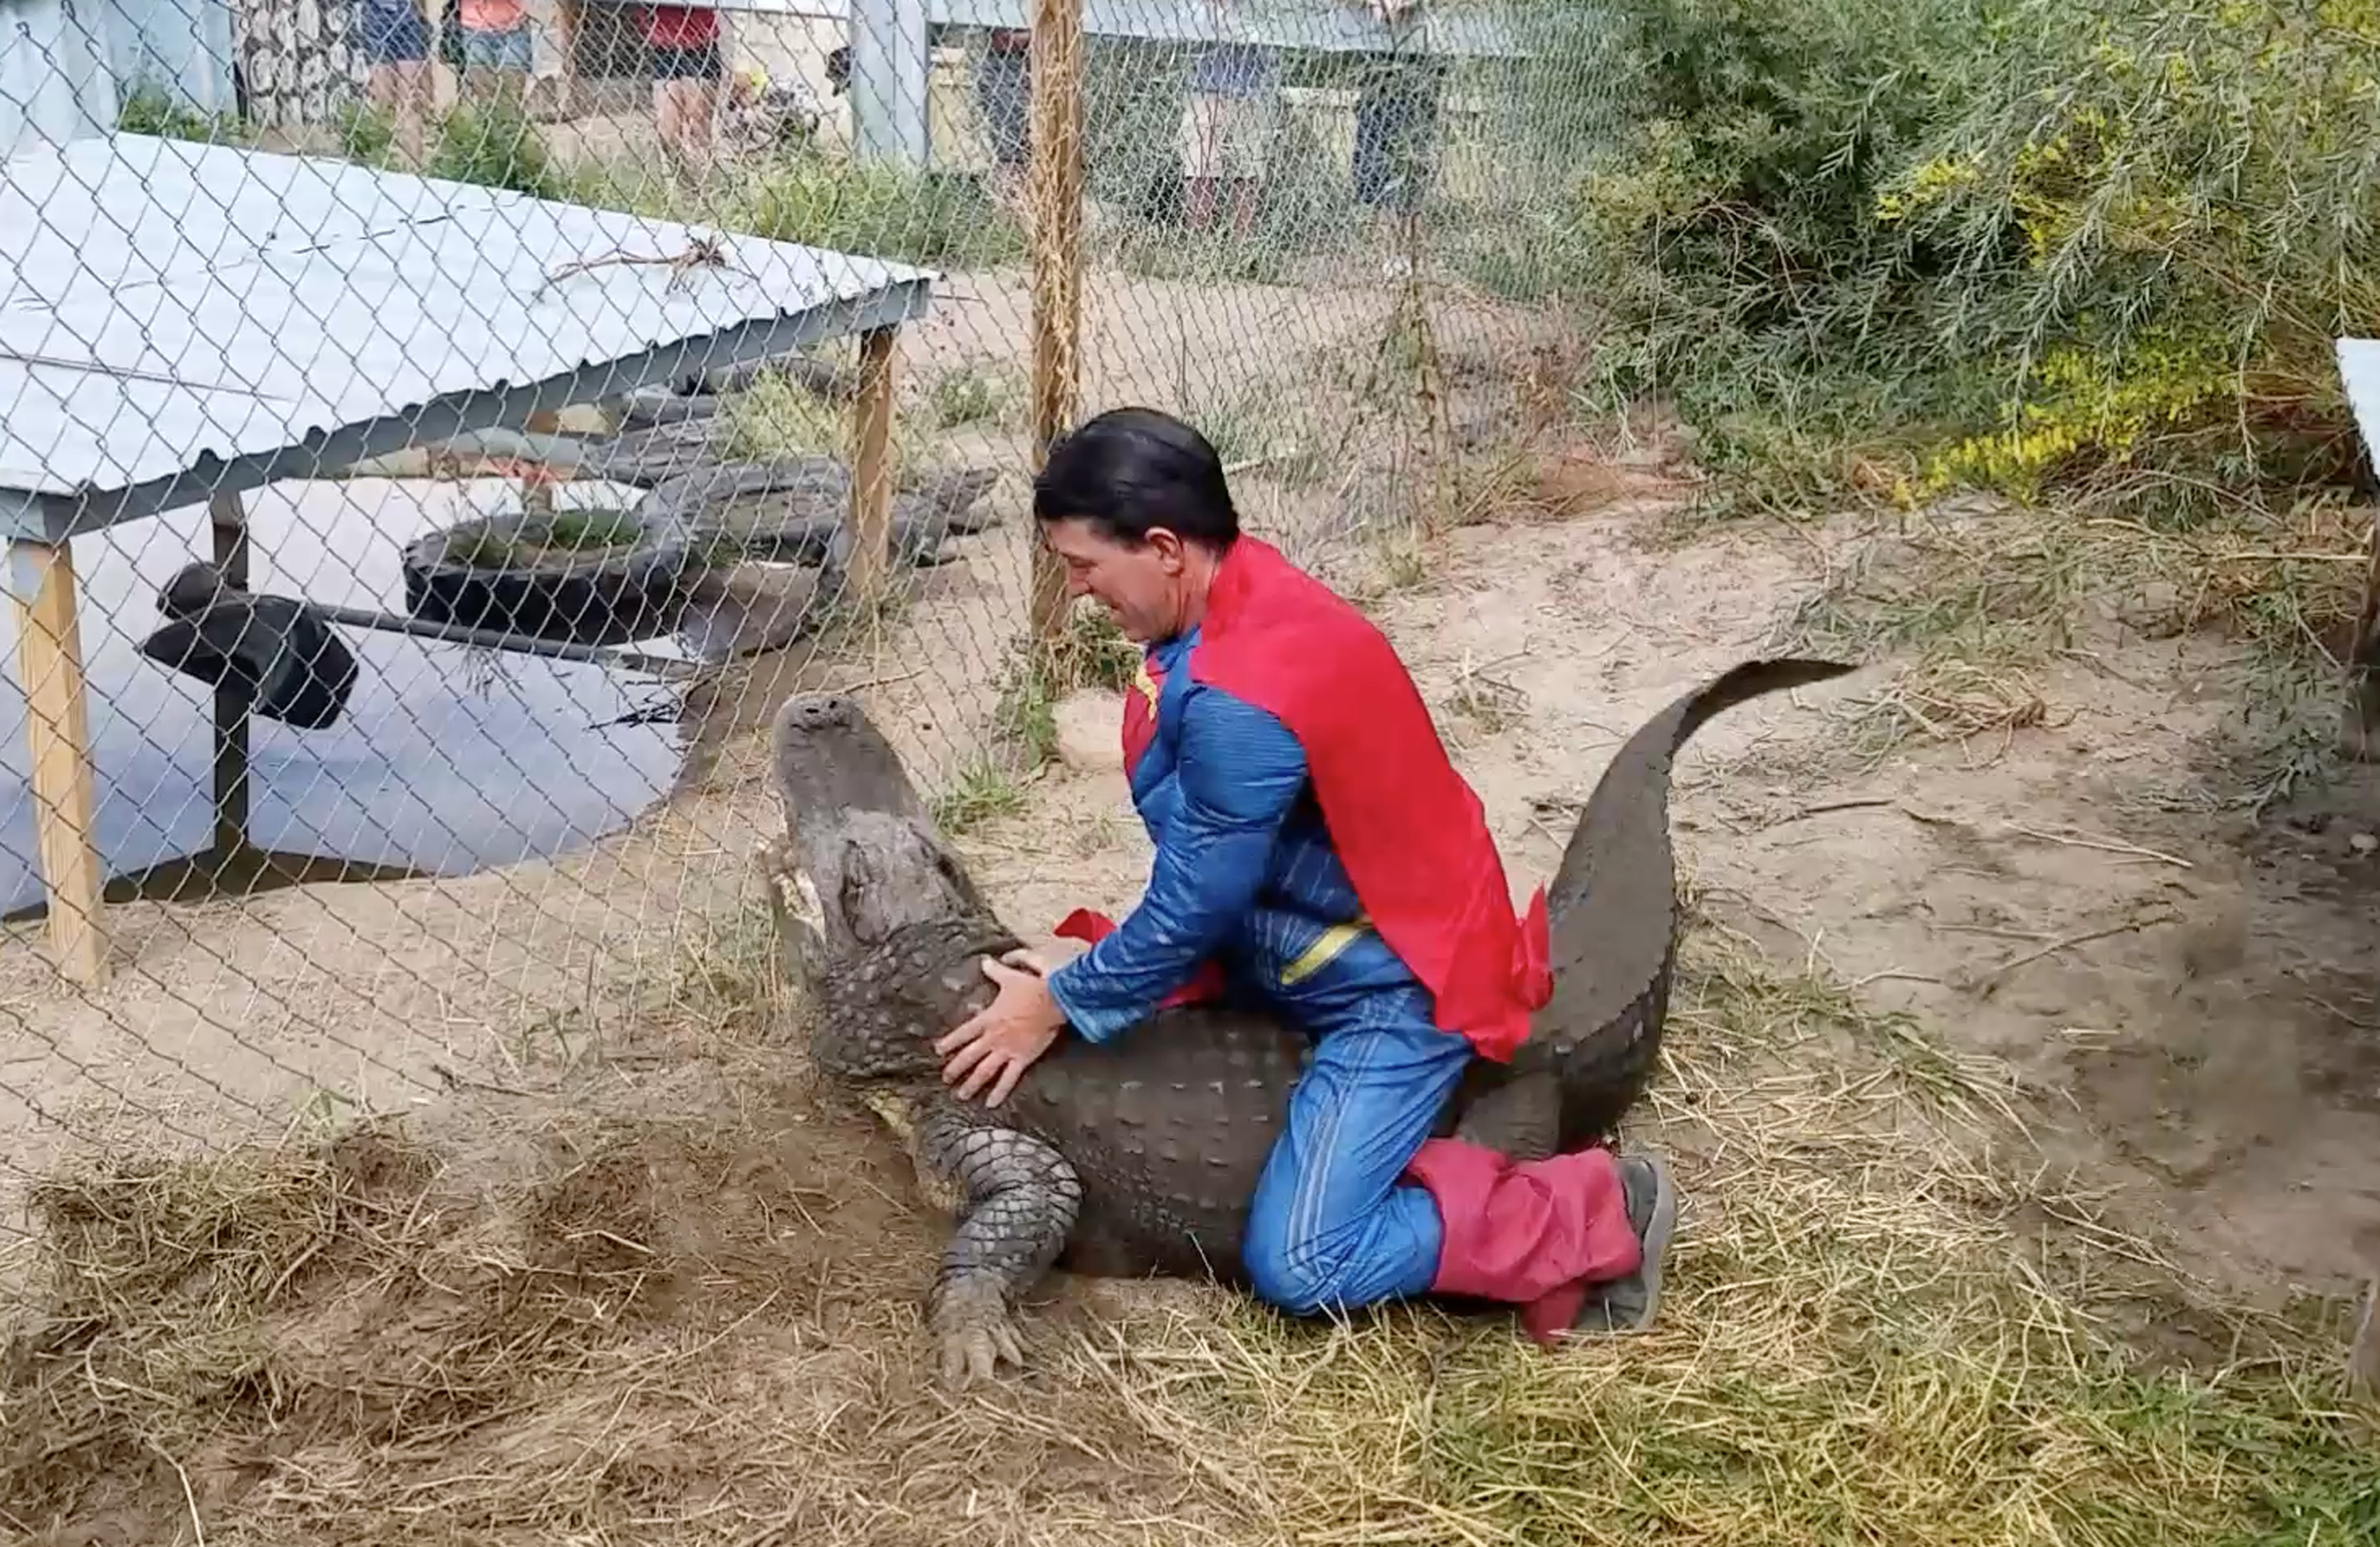 http://www.storytrender.com/wp-content/uploads/2017/09/6_CATERS_SUPERMAN_GATOR_EGG_EXTRACTION_07.jpg